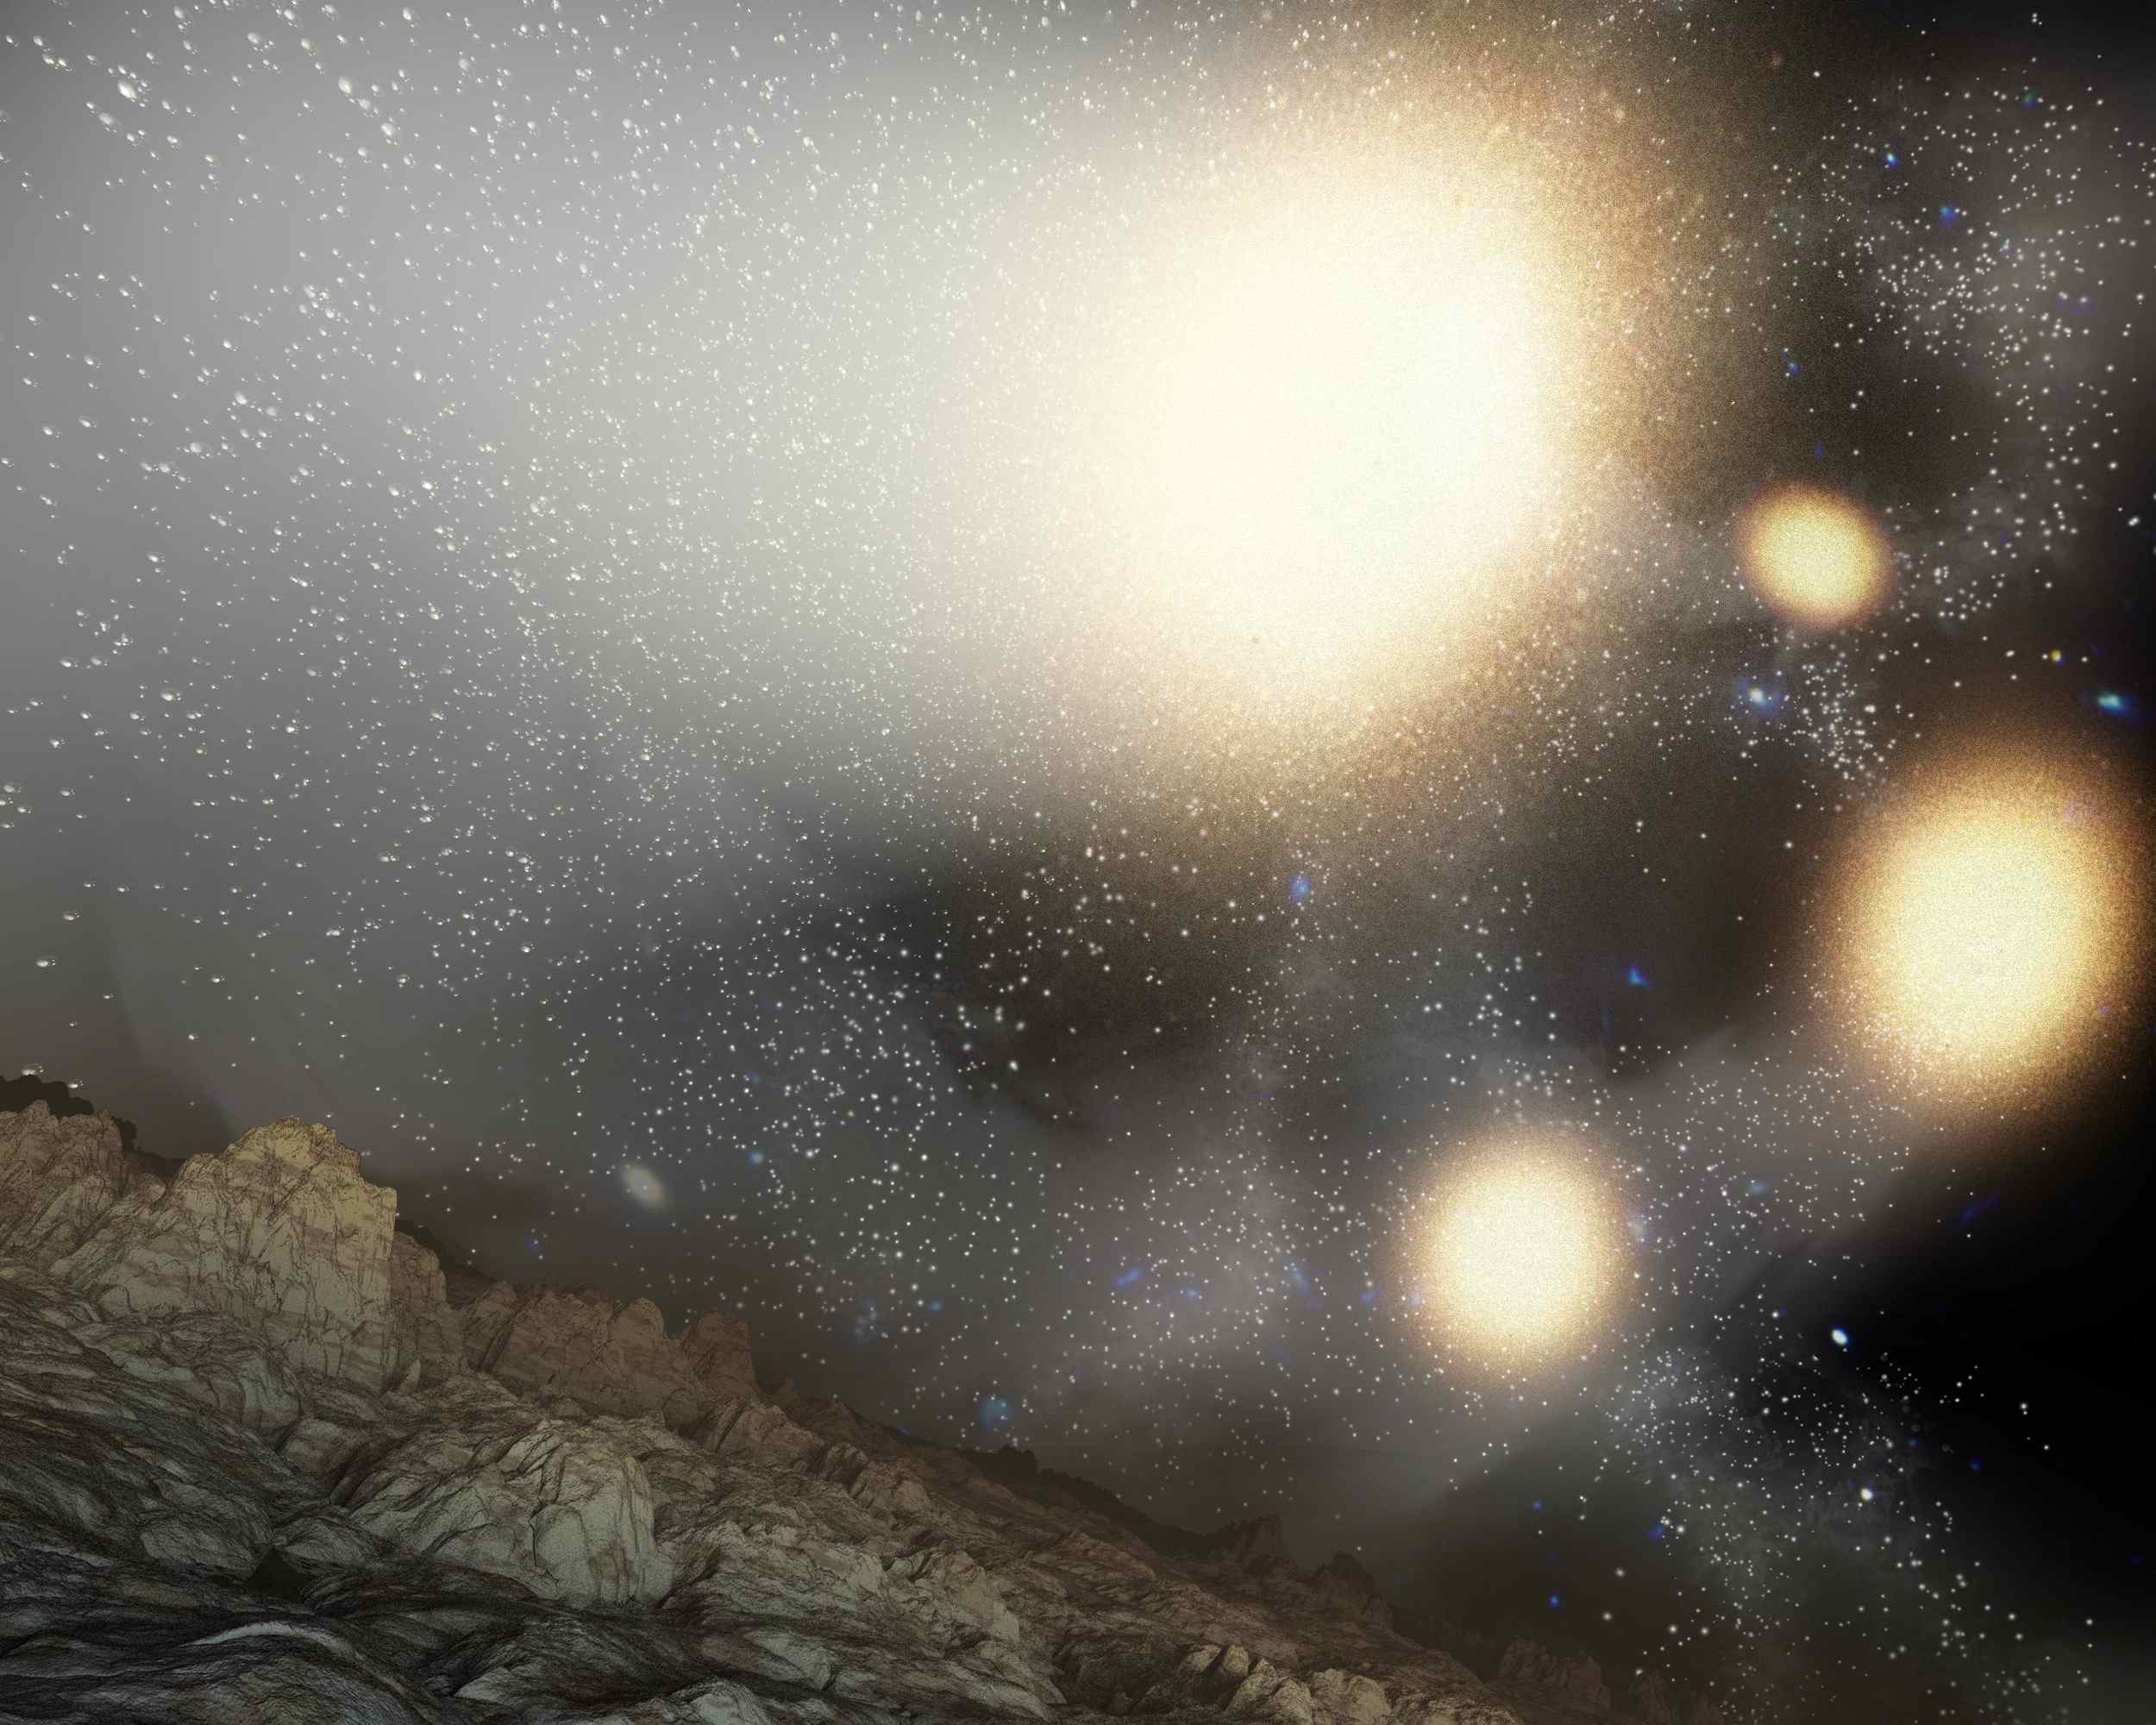 This artist's concept shows what the night sky might look like from a hypothetical planet around a star tossed out of an ongoing four-way collision between big galaxies.